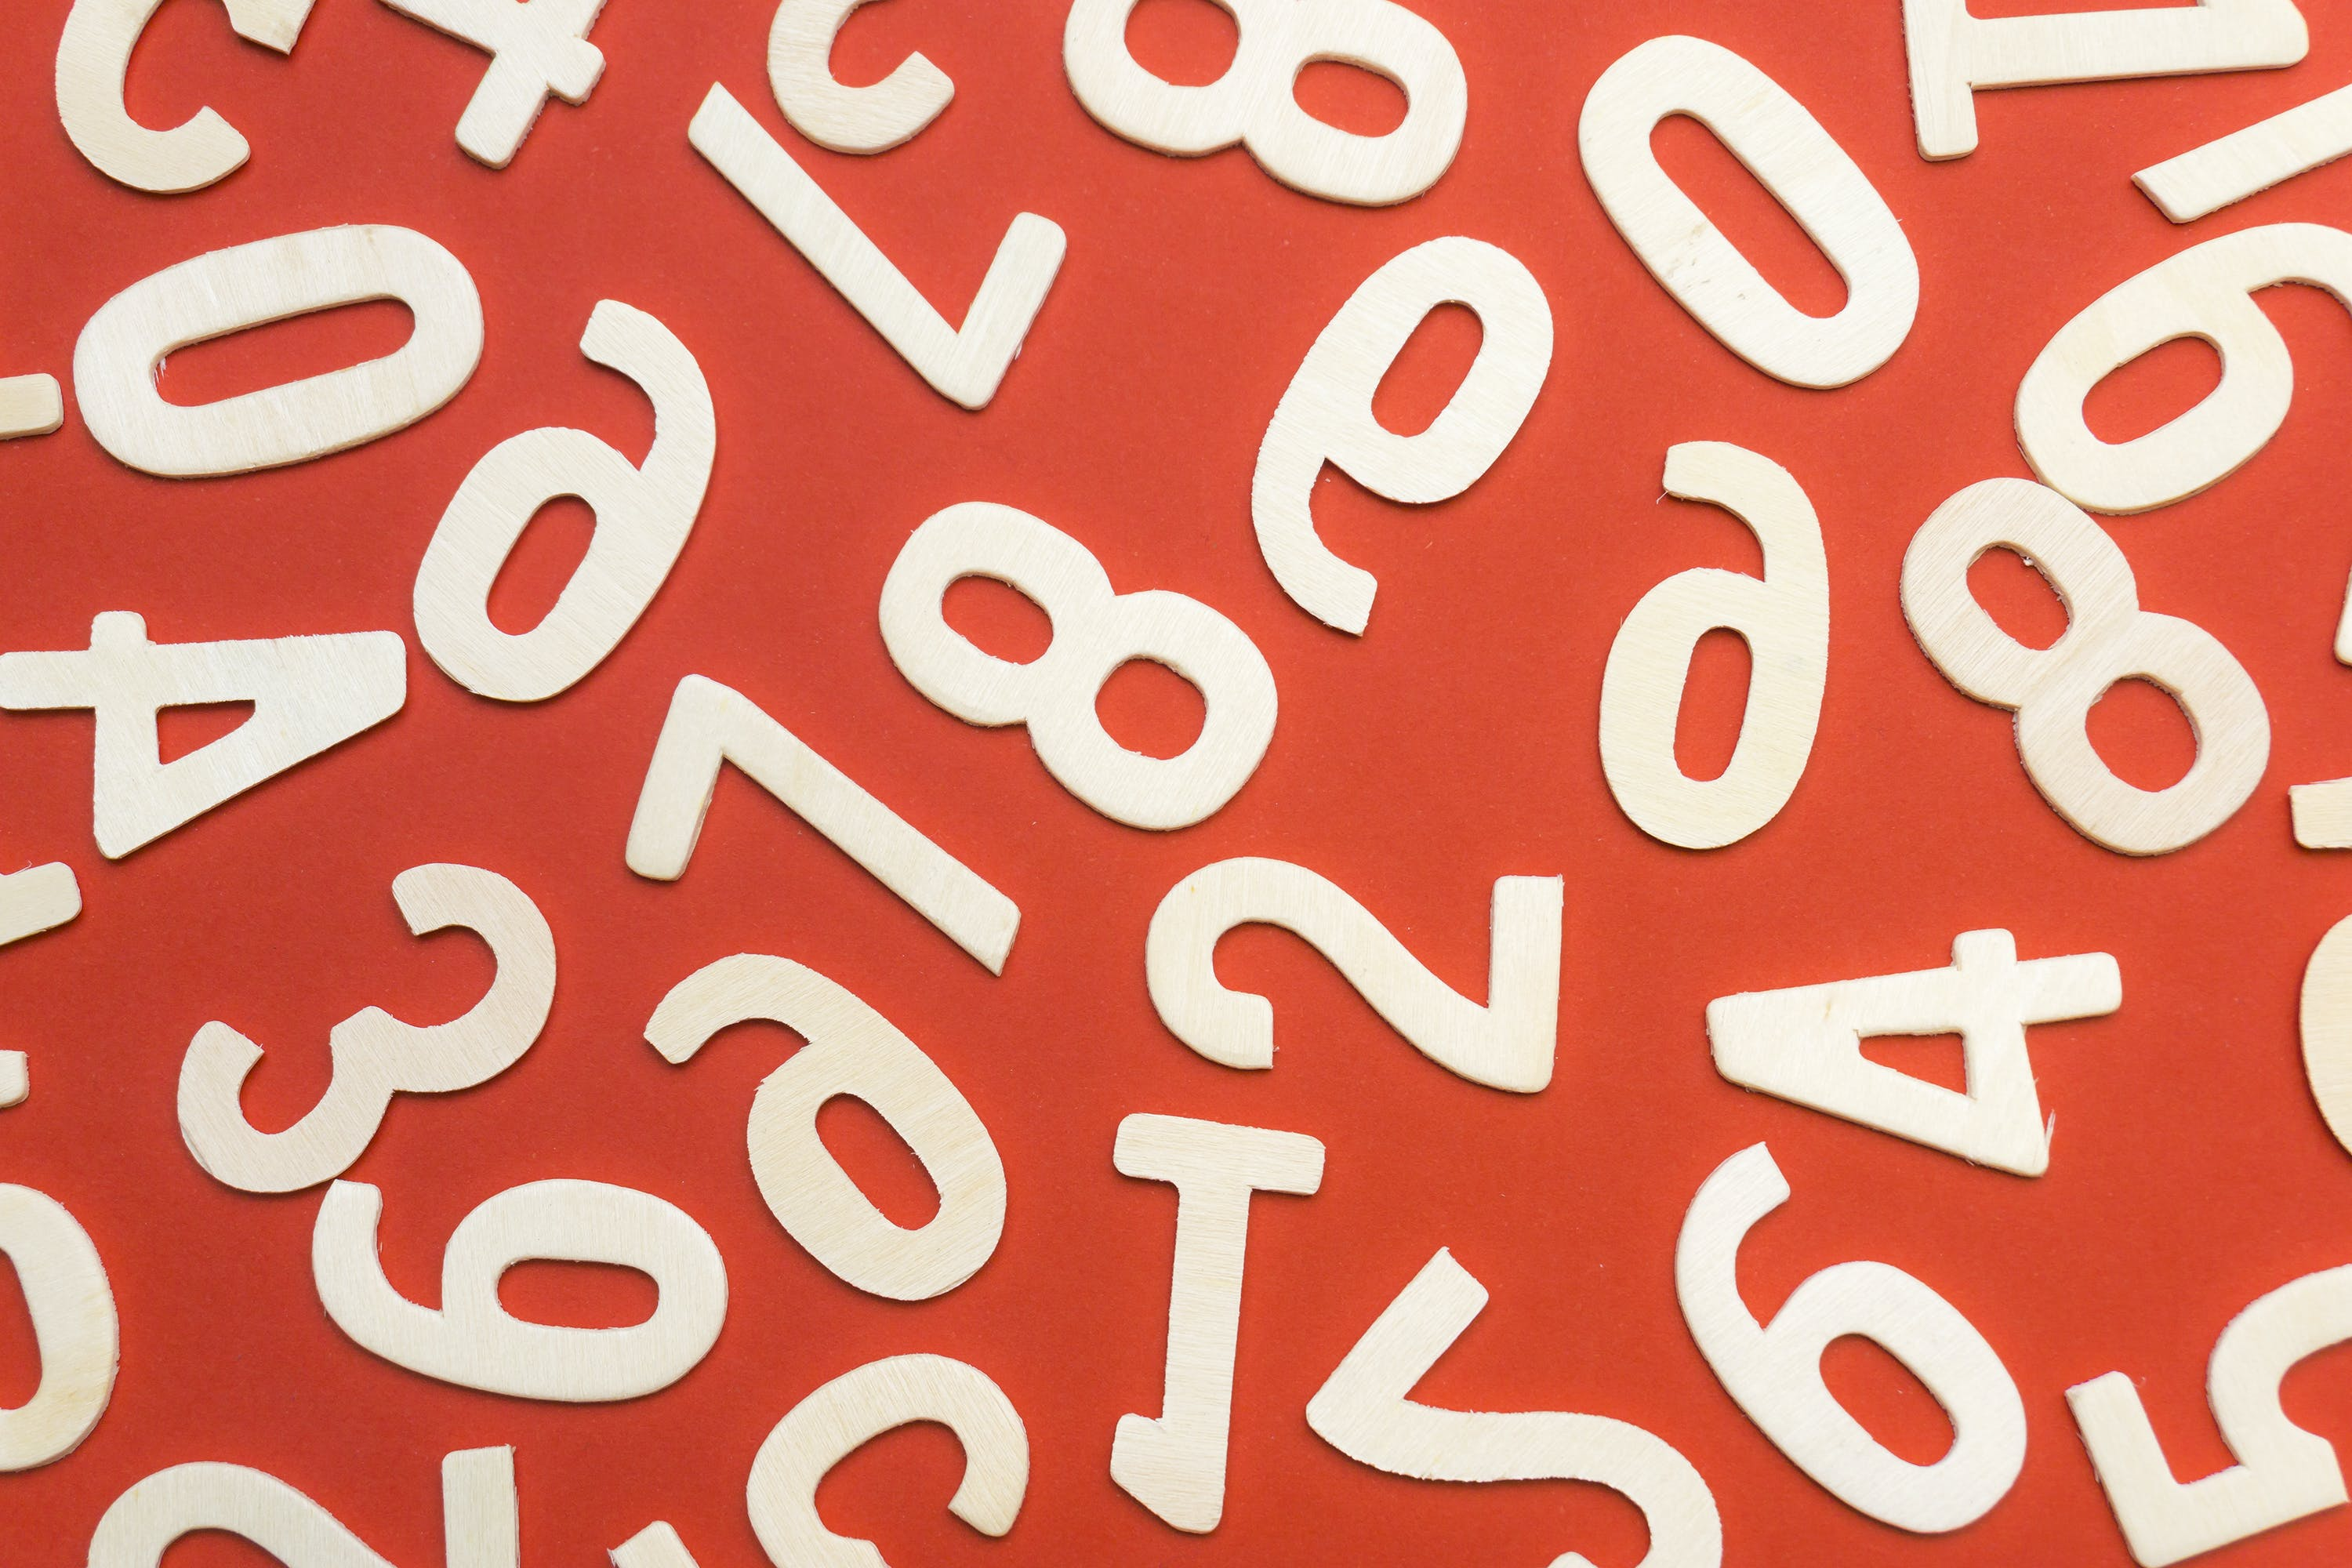 Free stock photo of numbers, style, concept, red background